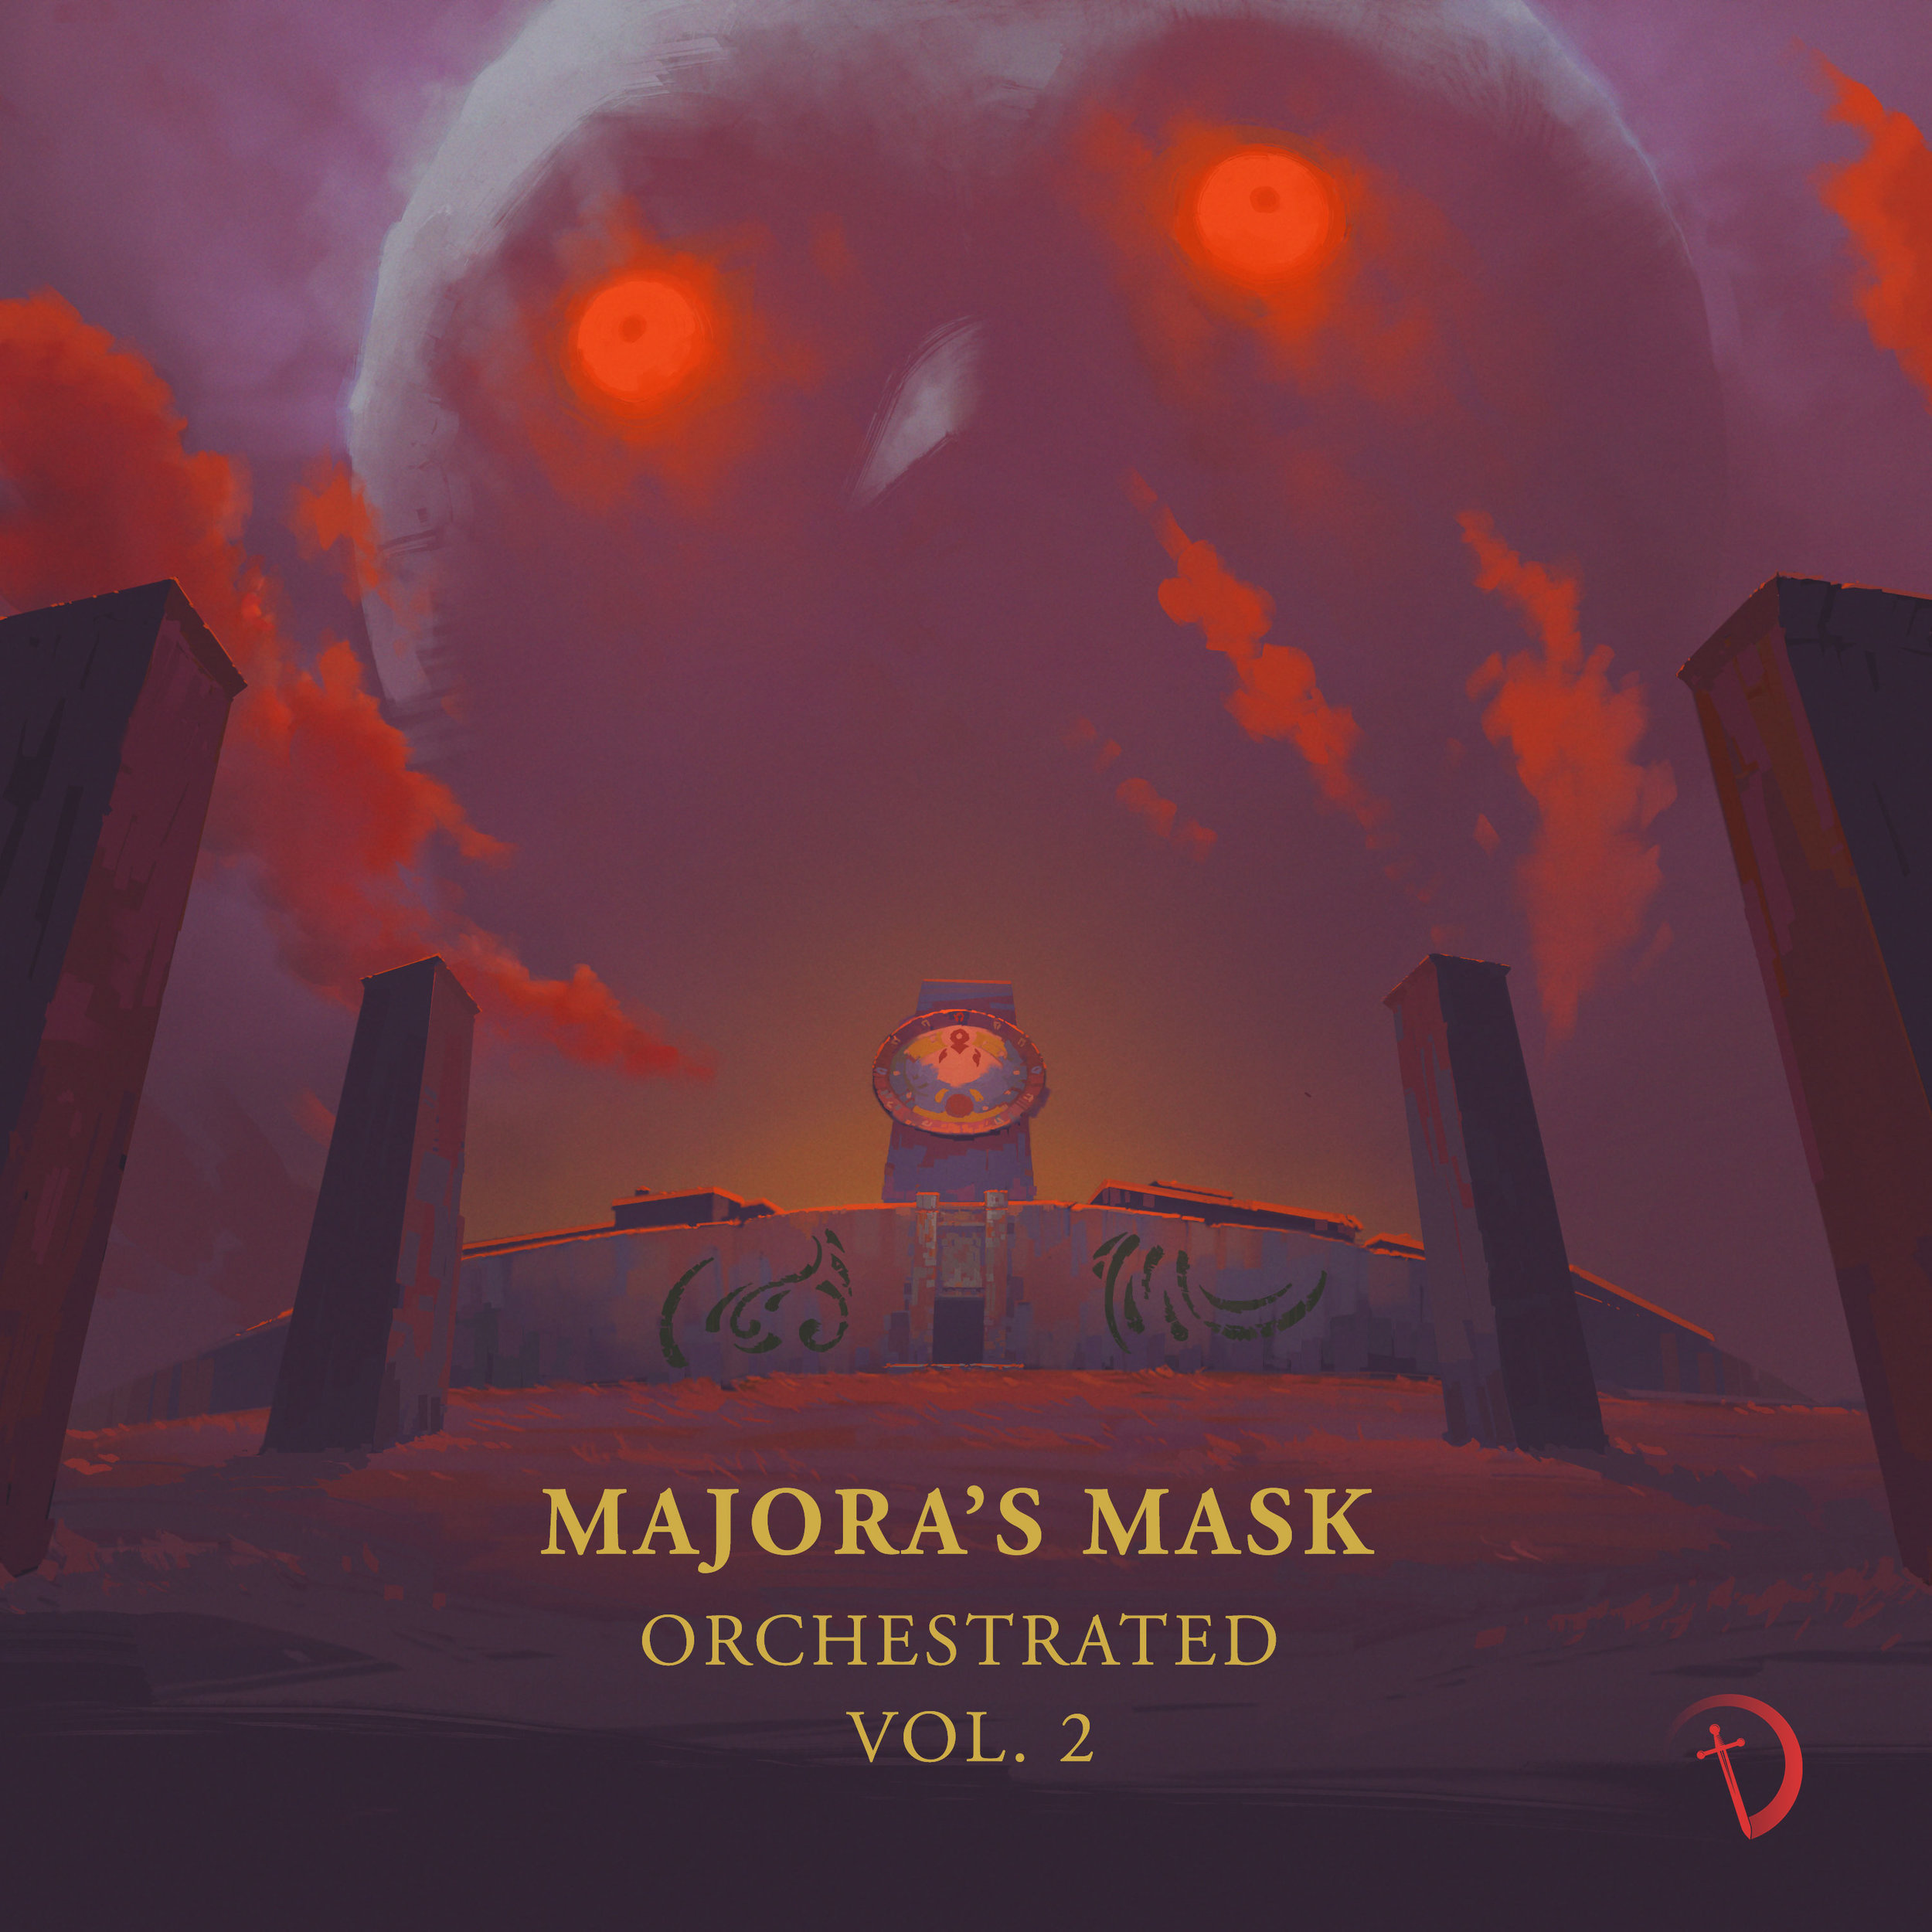 Majora's Mask Orchestrated Vol.2  - Following on from vol.1 released years ago in 2015 when I was just about finding my feet with the Trend Orchestra, this second volume of tracks selected from the Majora's Mask soundtrack aim to take you to new nostalgic heights. Stronger arrangements, clearer mixes, better recordings. I really hope it brings back some memories for you.